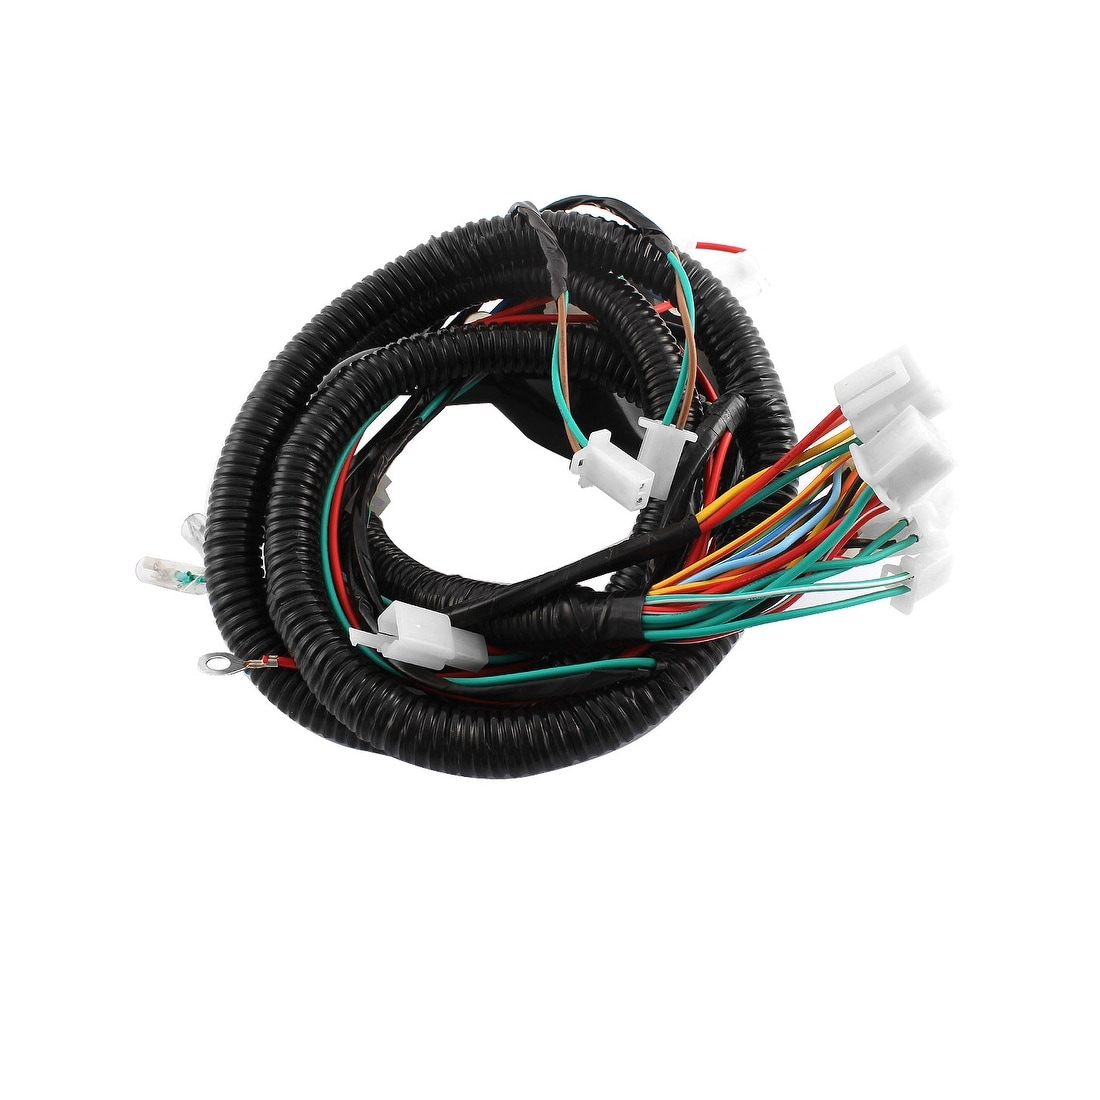 Shop Unique Bargains Motorcycle Ultima Complete System Electrical Wiring Harness Main For Gy6125 On Sale Free Shipping Orders Over 45